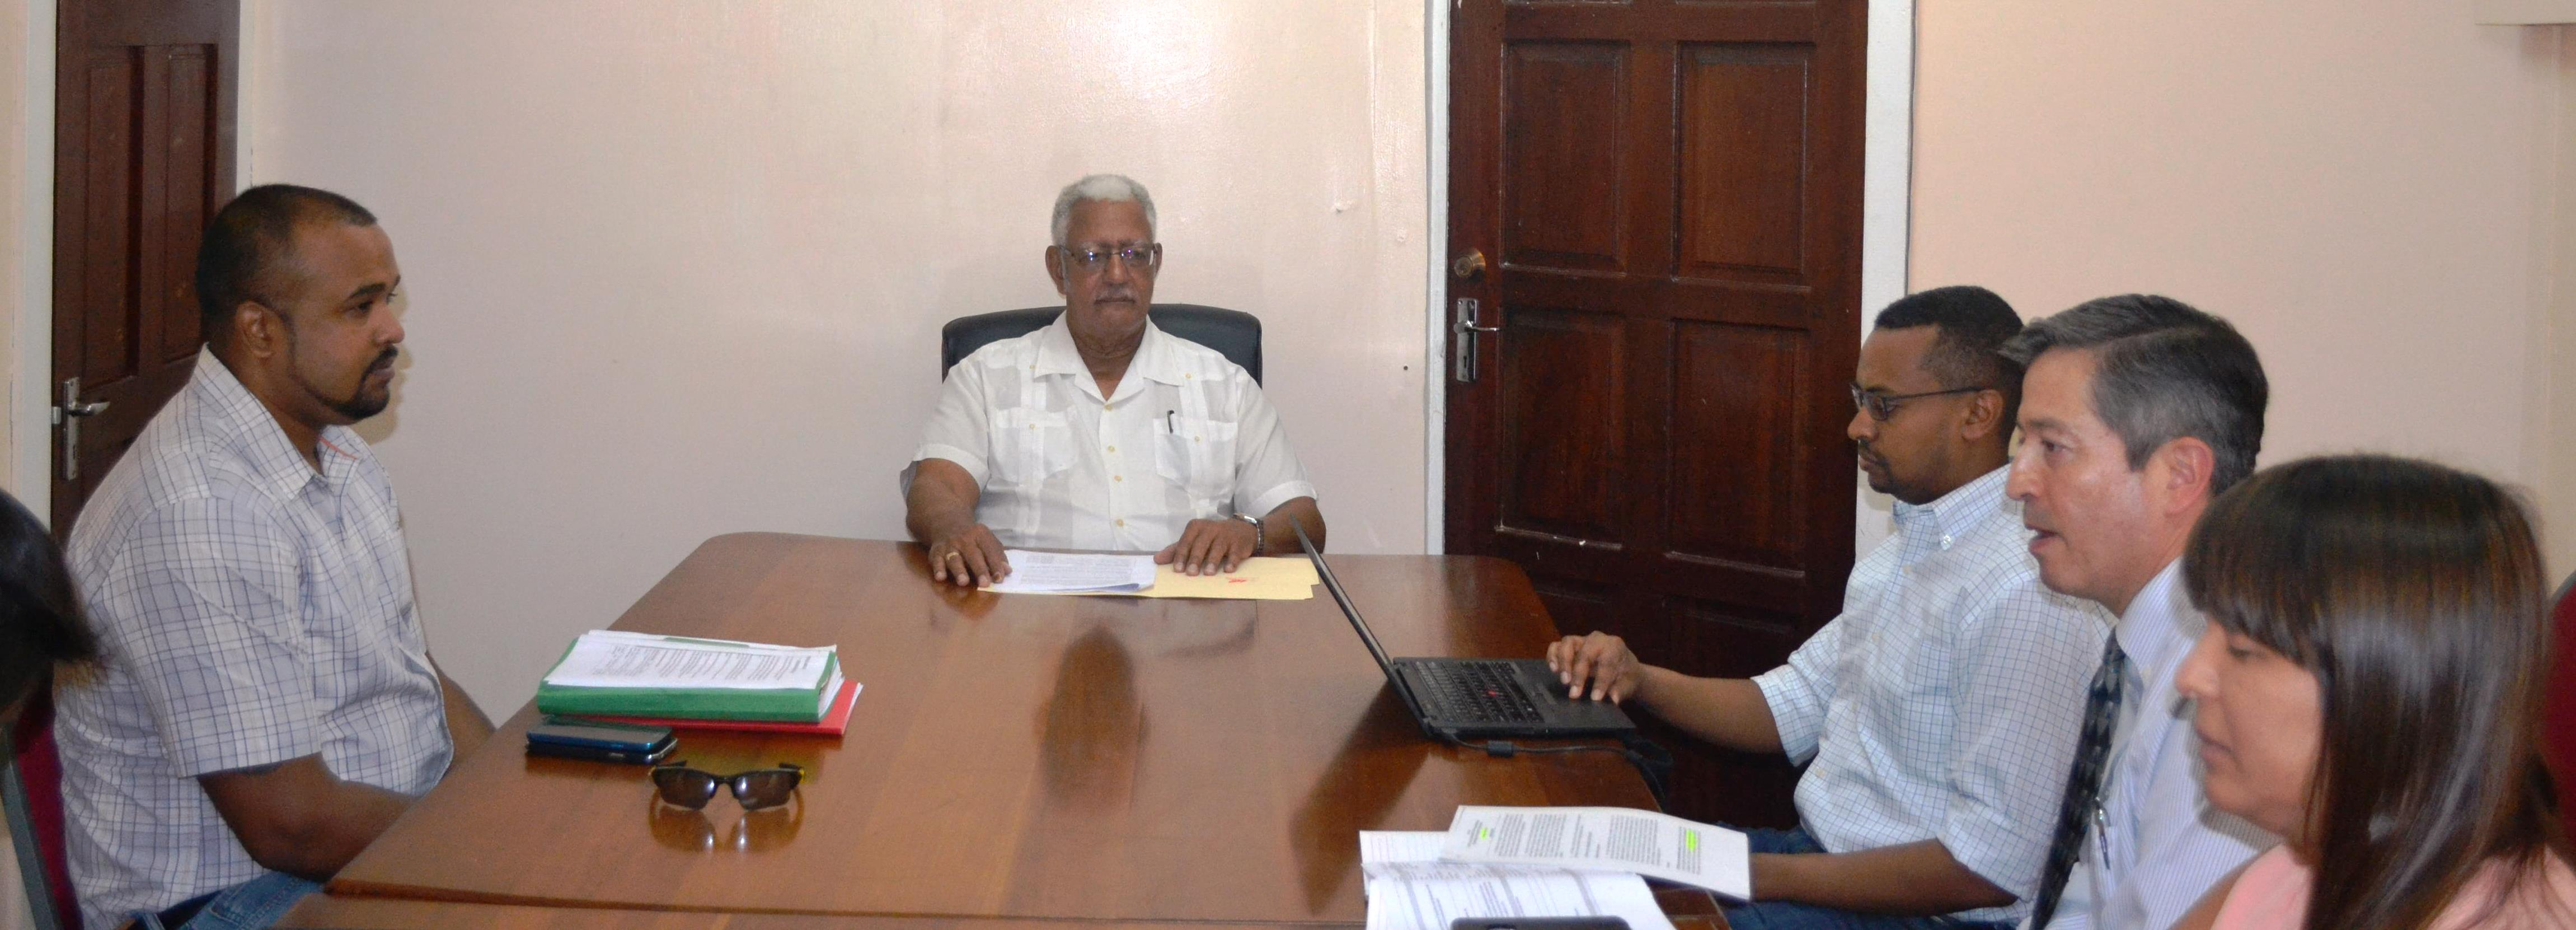 Agriculture Minister Noel Holder  during a meeting with IDB specialists. He was also accompanied by officials  from ASDU and NDIA